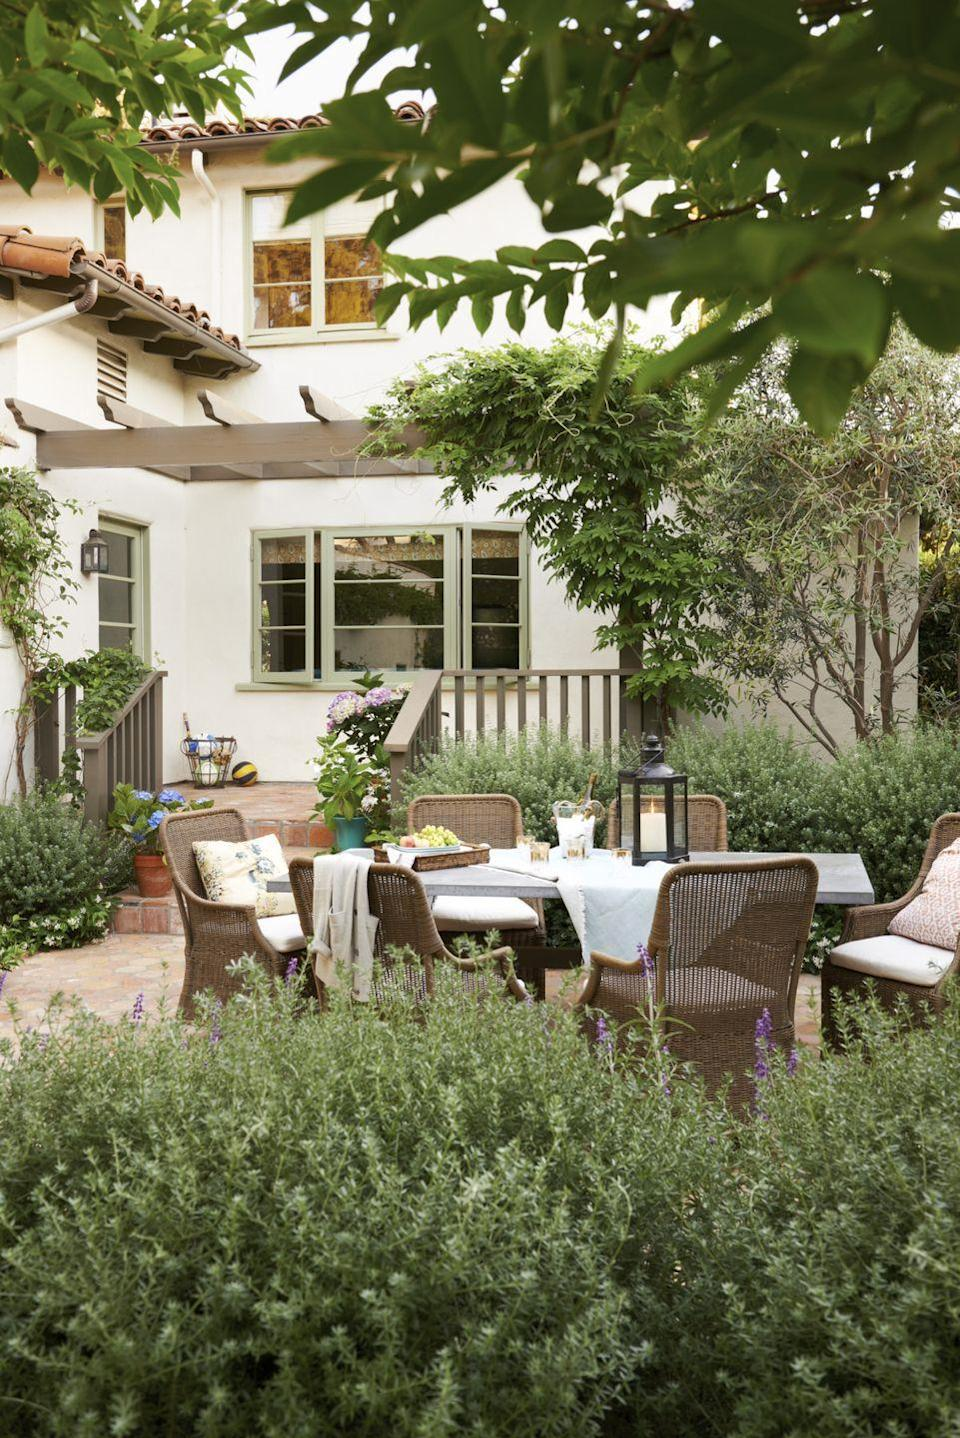 """<p>""""Easter coincides with the coming of spring. Take advantage of nature's reemerging beauty by hosting your Easter feast outdoors in an intimate space. An outdoor backdrop frees you up to keep the tablescape fairly simple. Adding throw pillows and blankets makes the table feel cozy and comfortable."""" <em>—<a href=""""http://www.markatosdesign.com/"""" rel=""""nofollow noopener"""" target=""""_blank"""" data-ylk=""""slk:Christine Markatos Lowe"""" class=""""link rapid-noclick-resp"""">Christine Markatos Lowe</a>, Interior Designer</em></p>"""